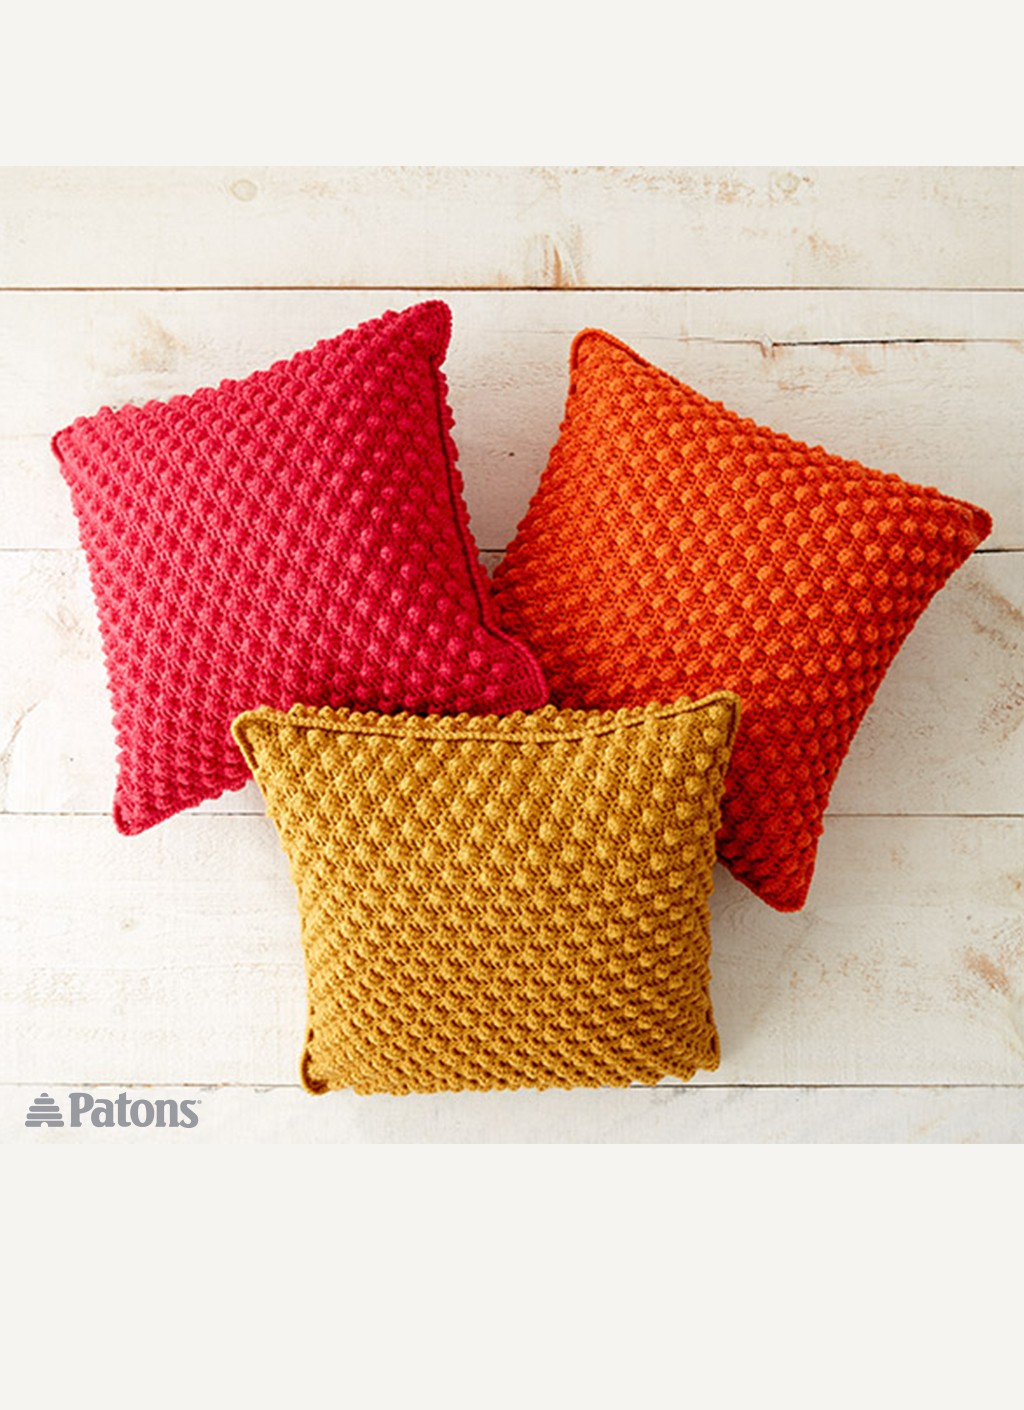 Patons bobble licious pillows crochet pattern yarnspirations bobble licious pillows bankloansurffo Image collections